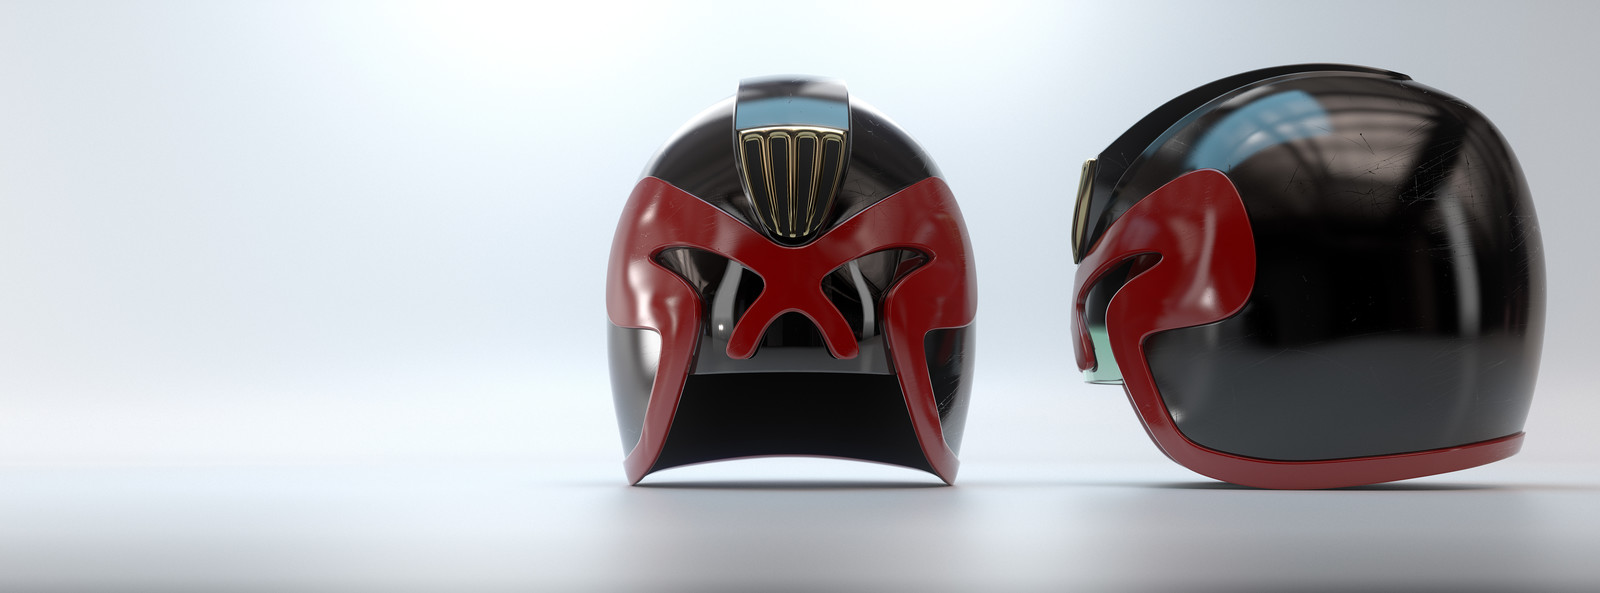 Judge Dredd universe helmet project